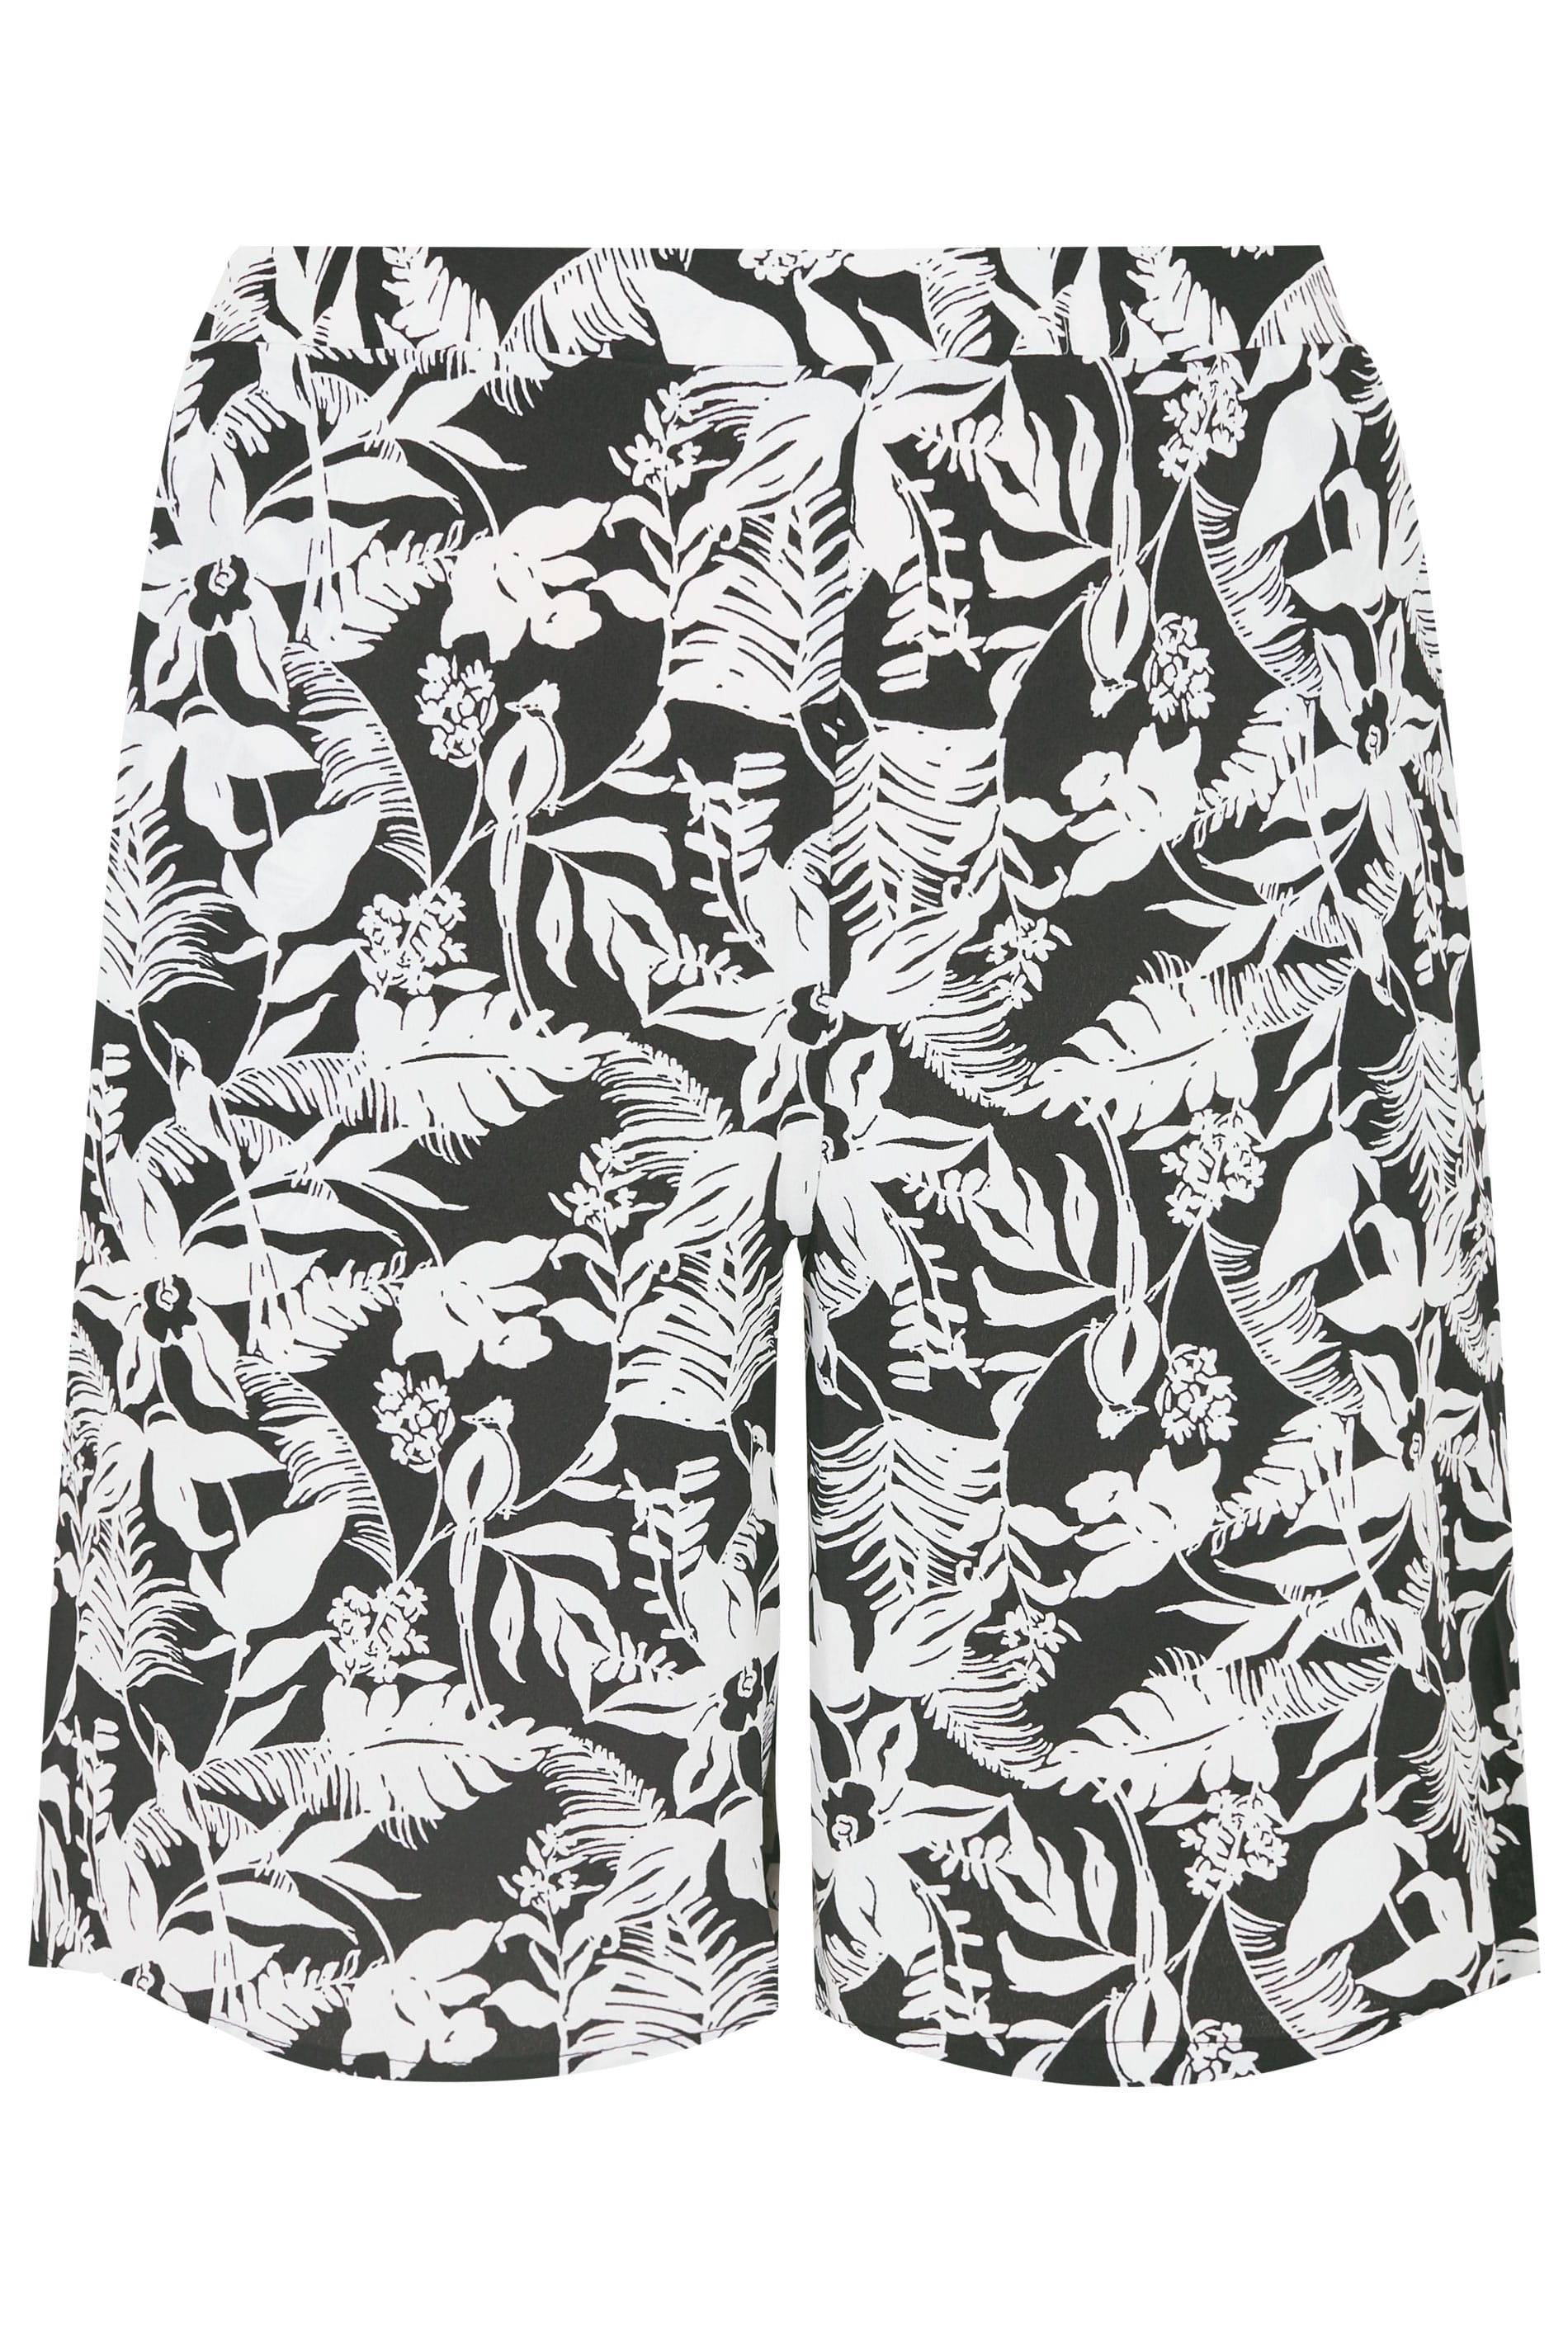 how to head a letter black amp white palm leaf print woven shorts plus size 16 to 32 40372